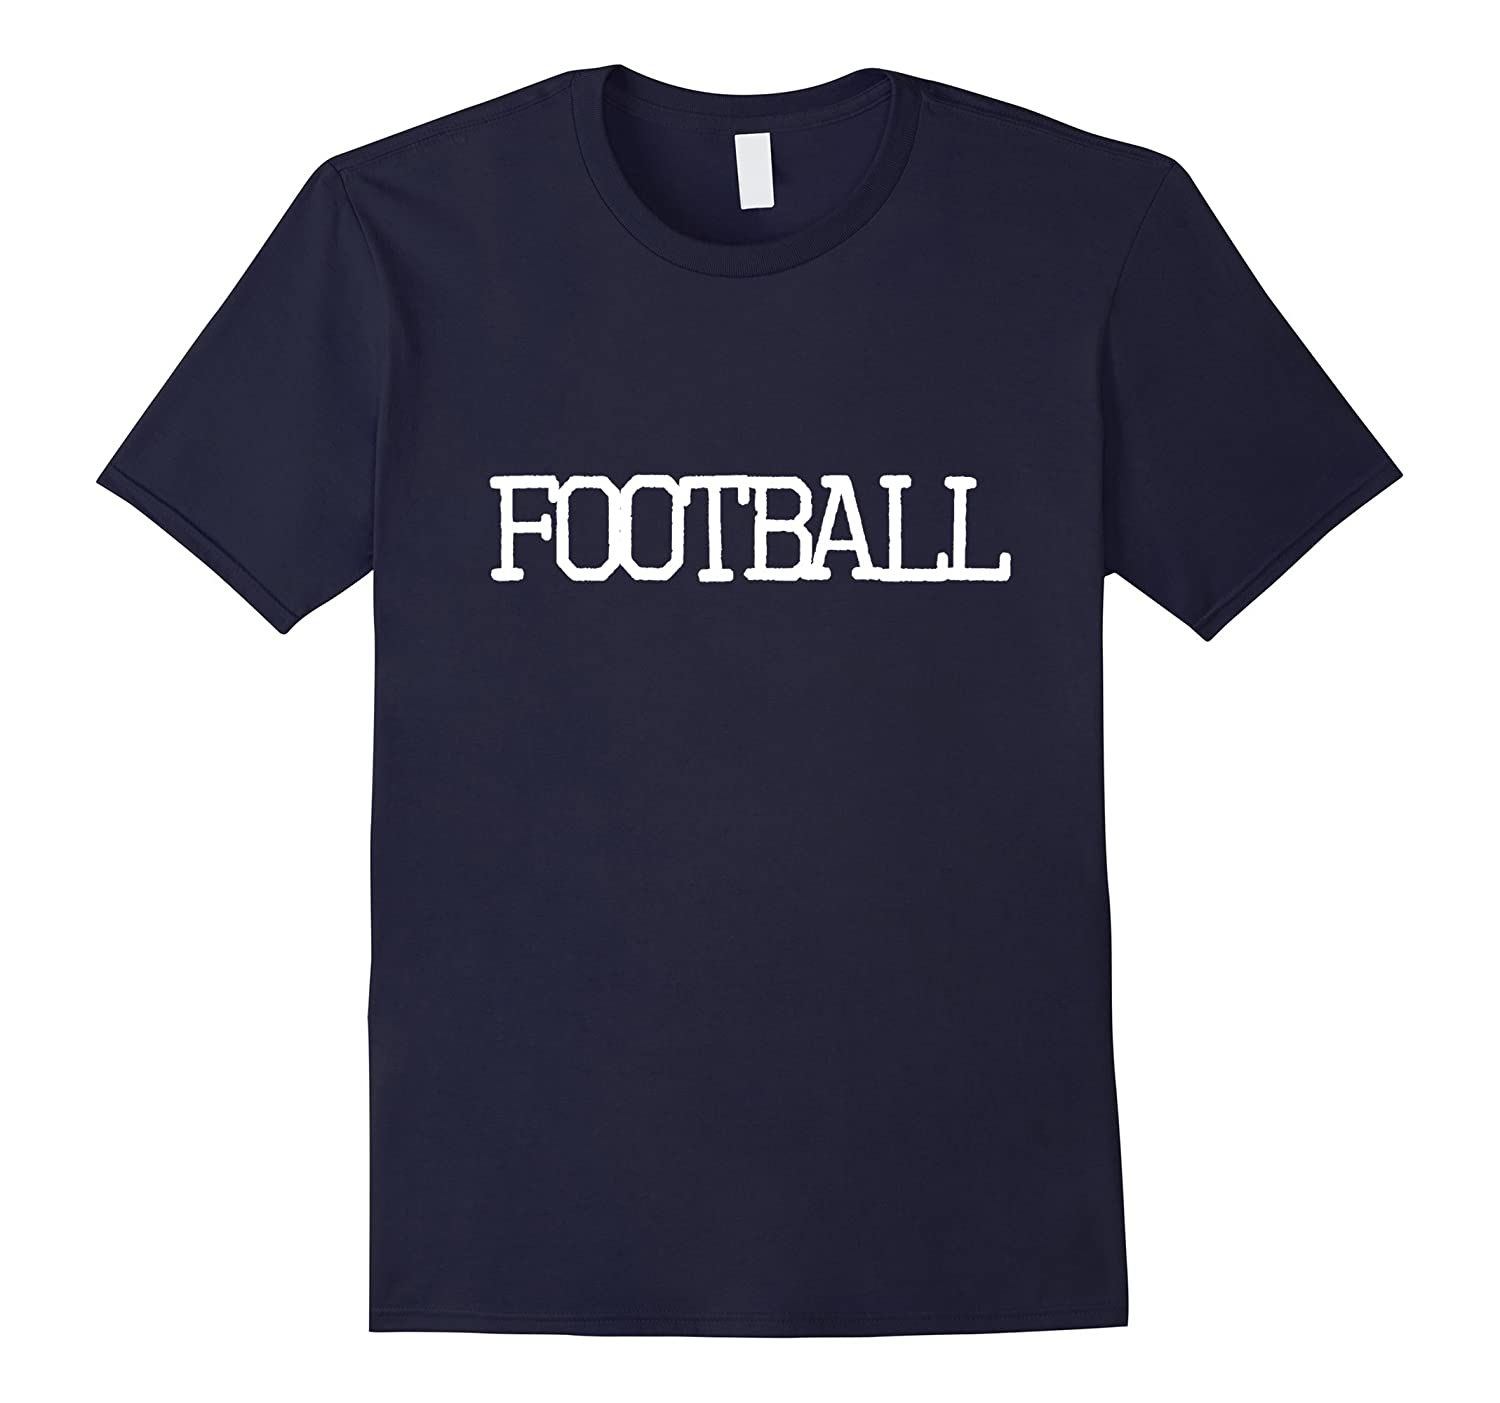 Football - Simple White Design 1-BN